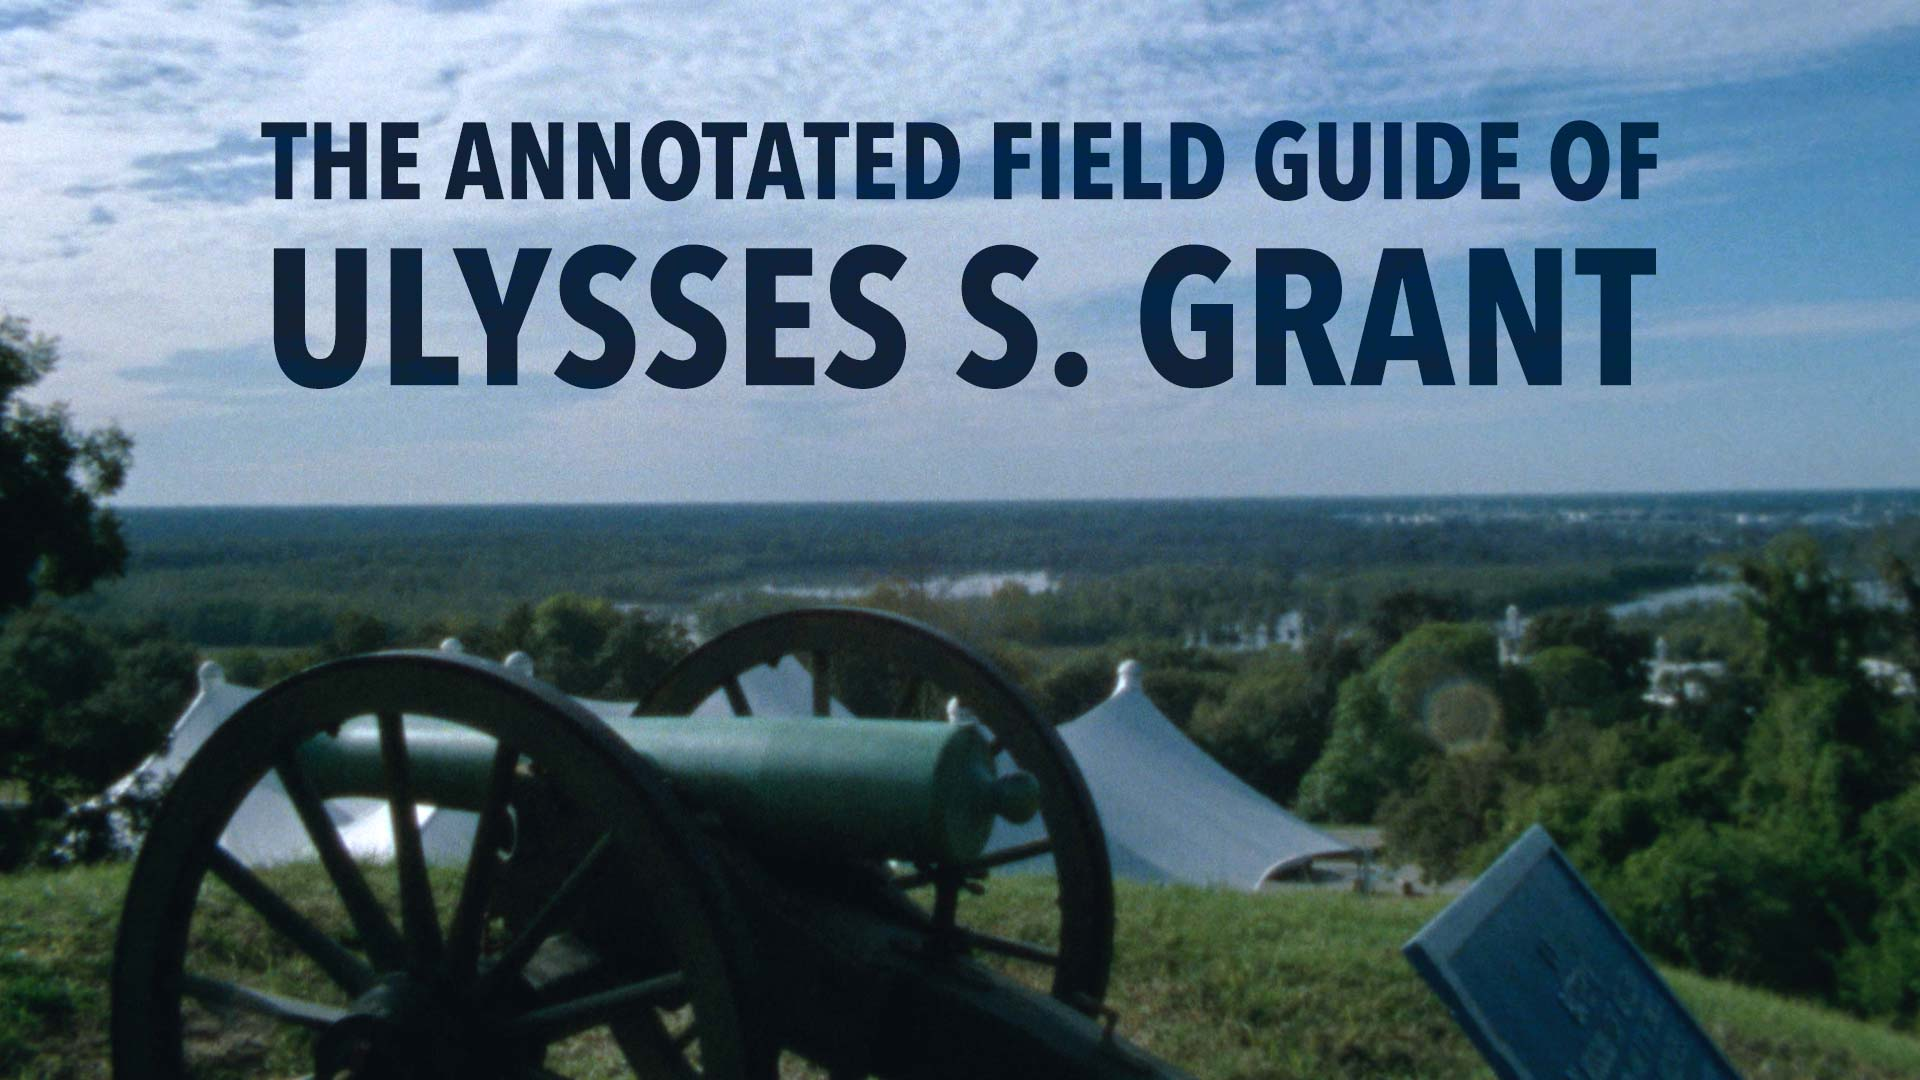 The Annotated Field Guide of Ulysses S. Grant - image